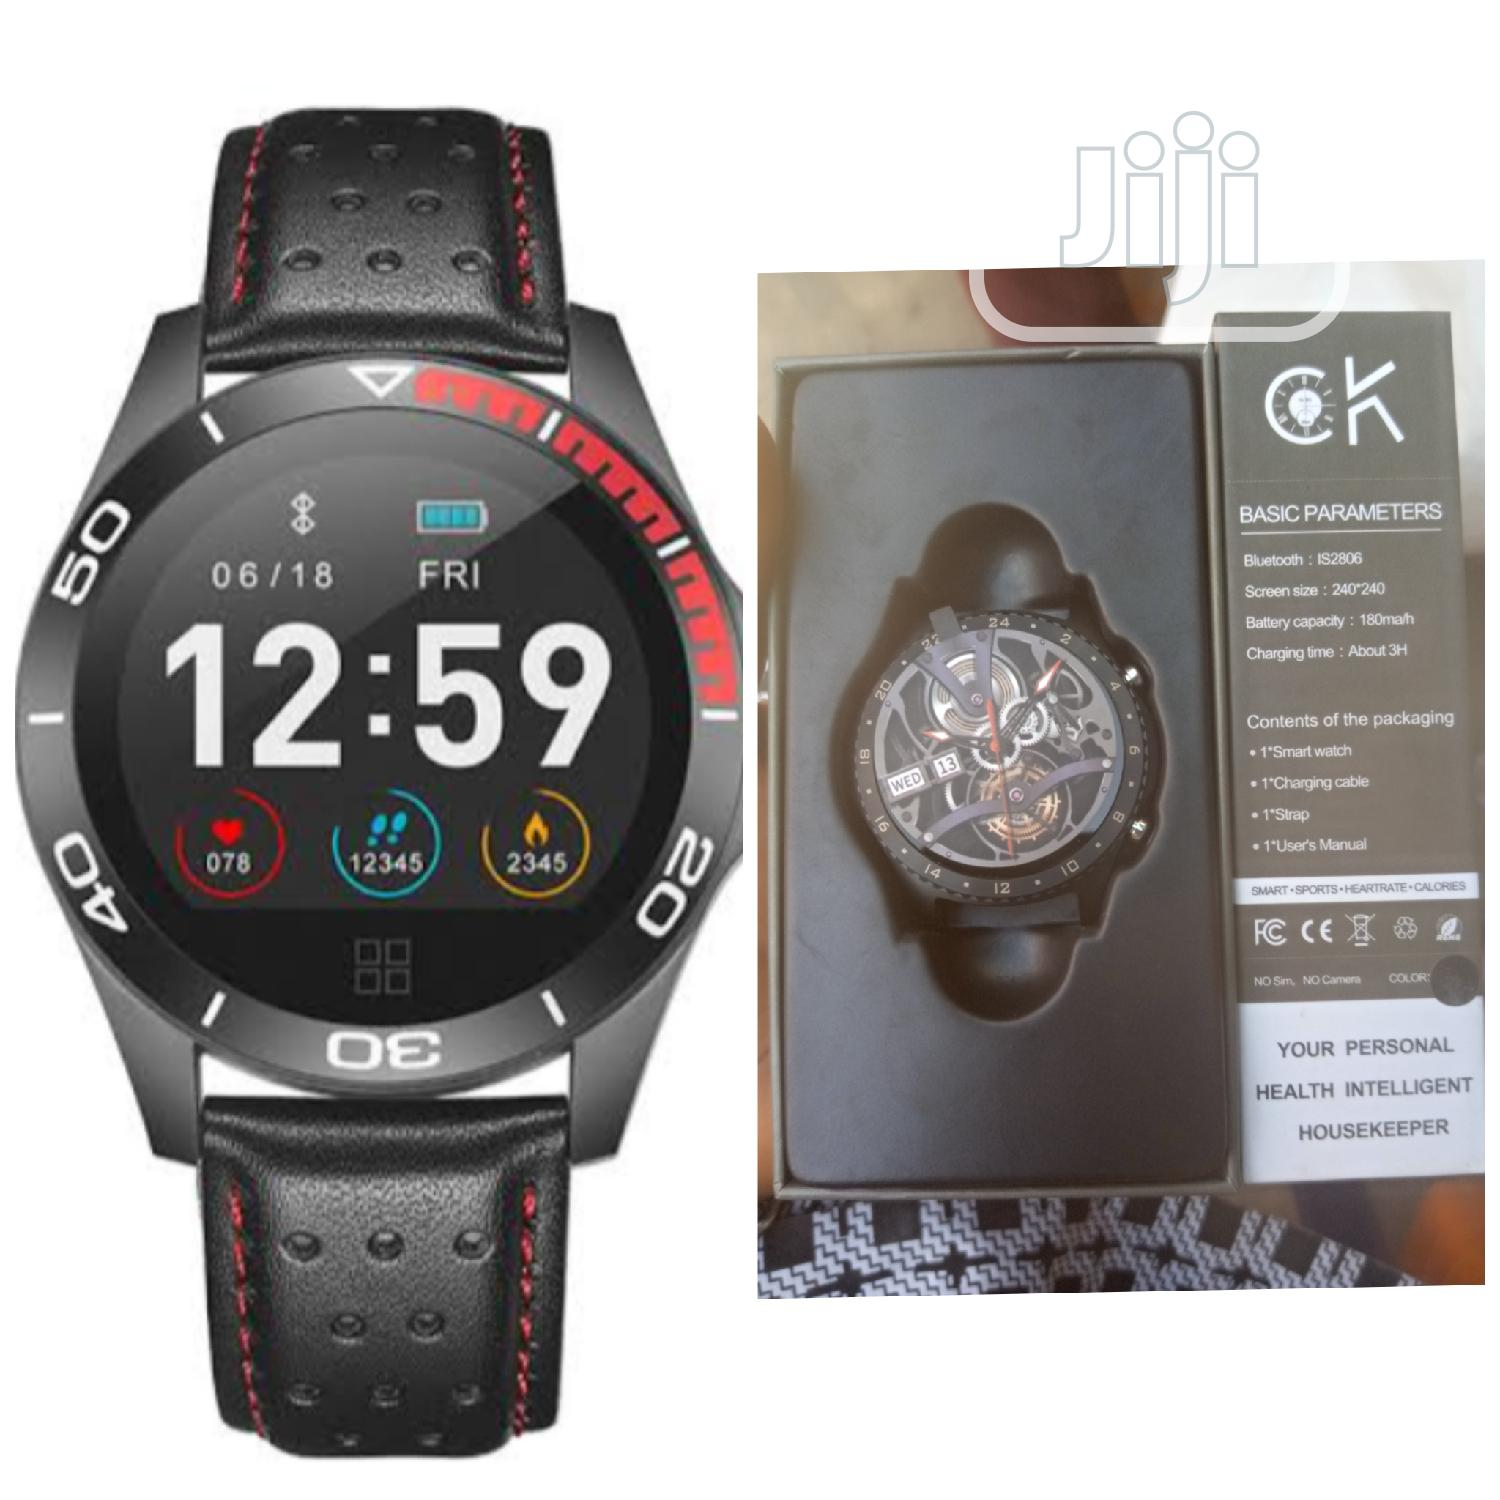 CK 29 Smart Watch and Fitness Tracker